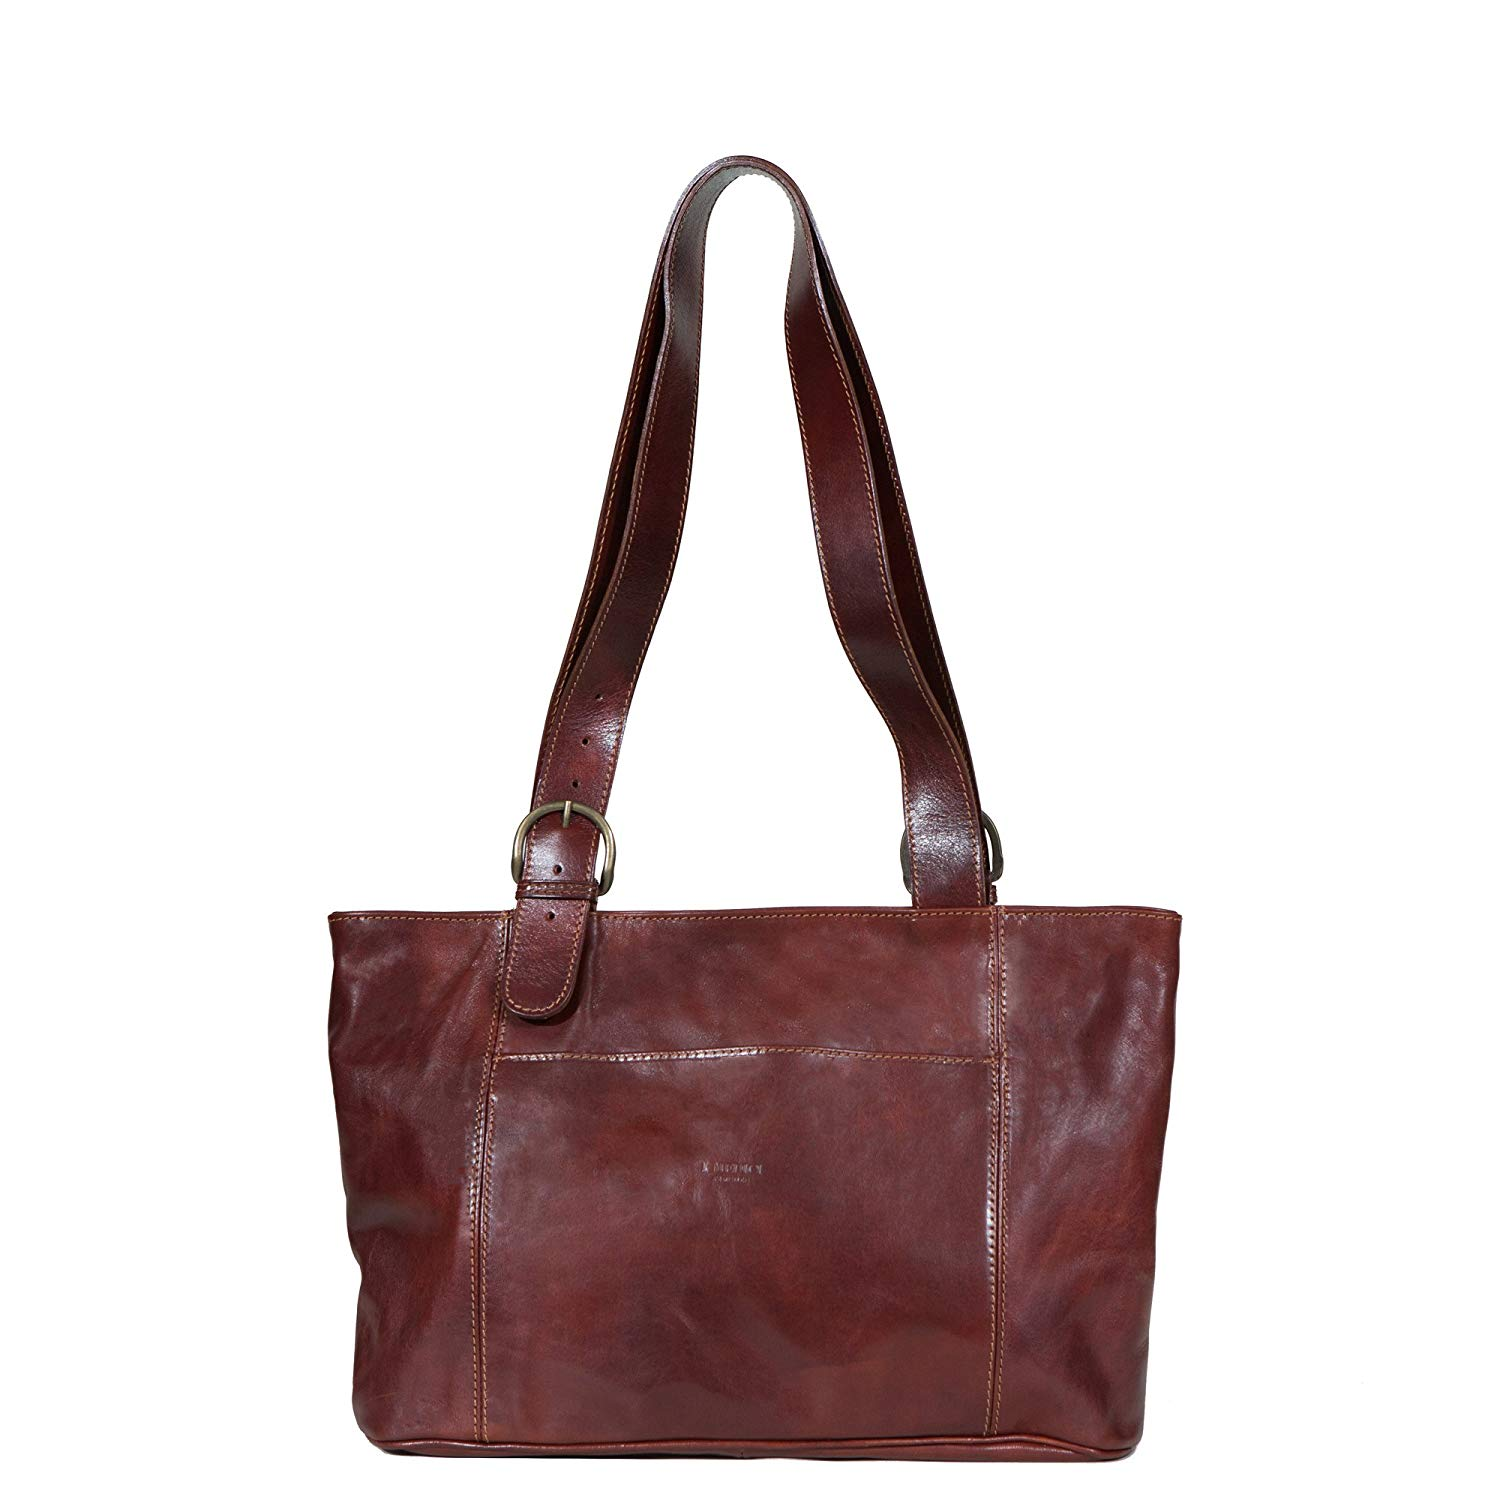 a49429b0155b Get Quotations · I Medici Firenze Borsa Italian Leather Large Shopping Tote  Bag in Brown